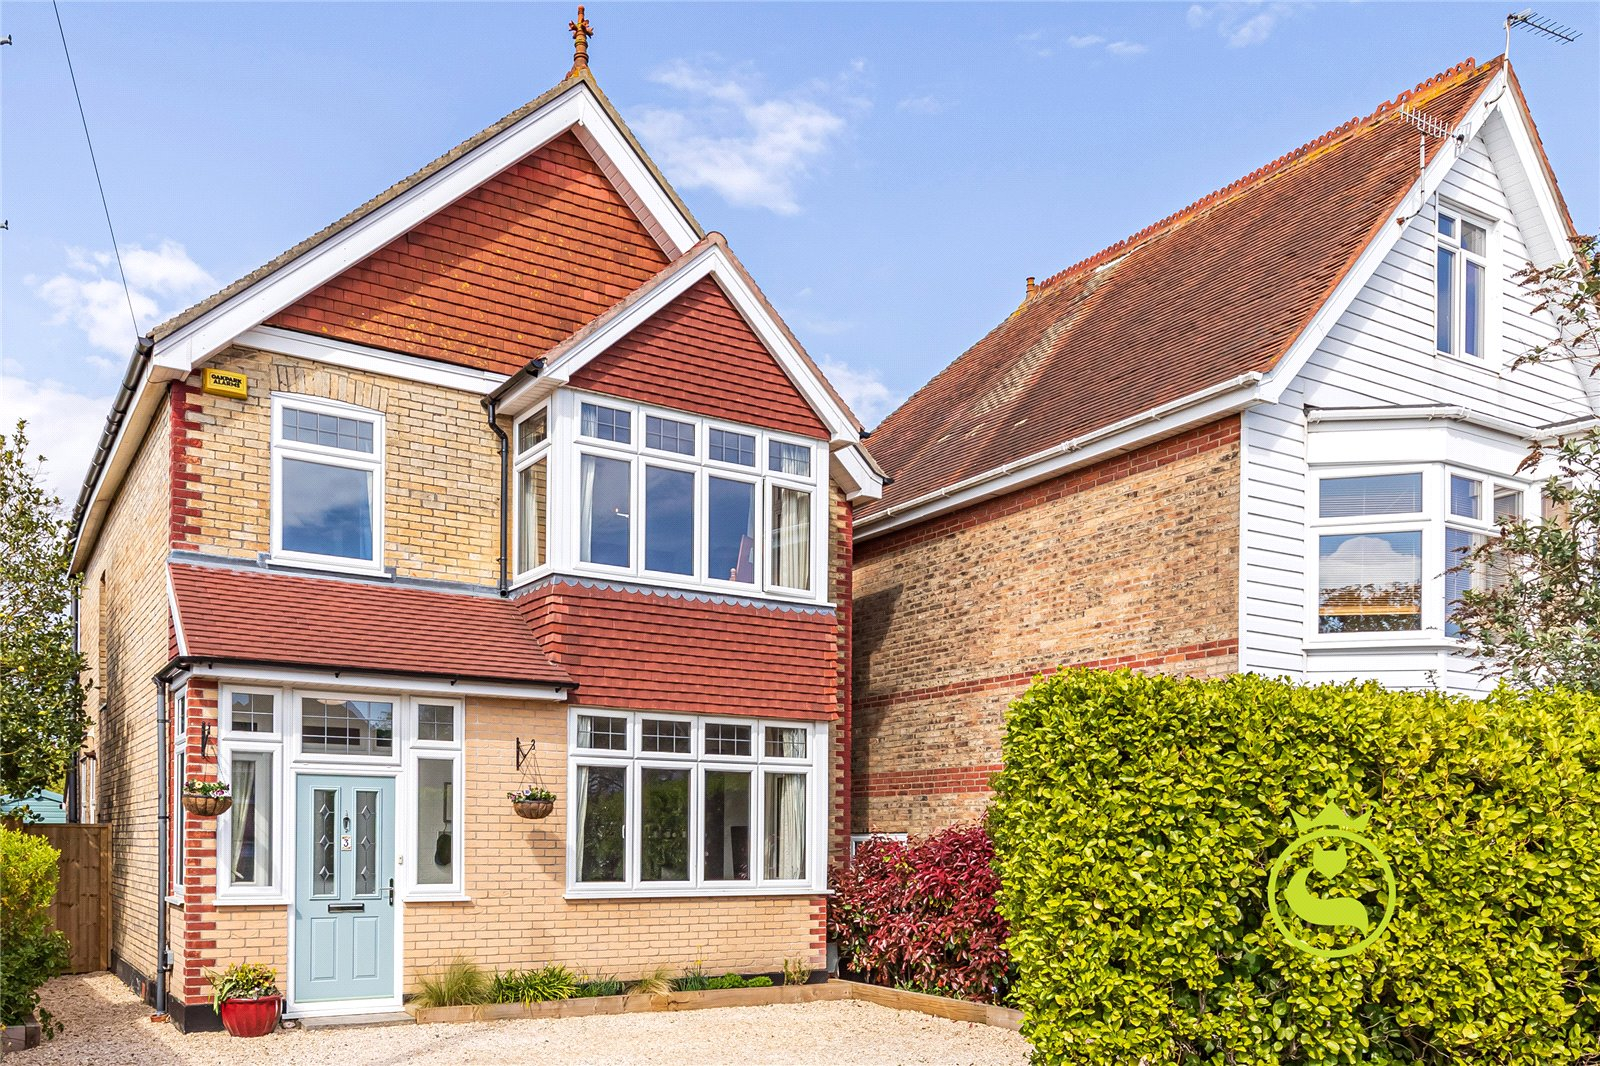 4 bed house for sale in Madeira Road, Lower Parkstone - Property Image 1